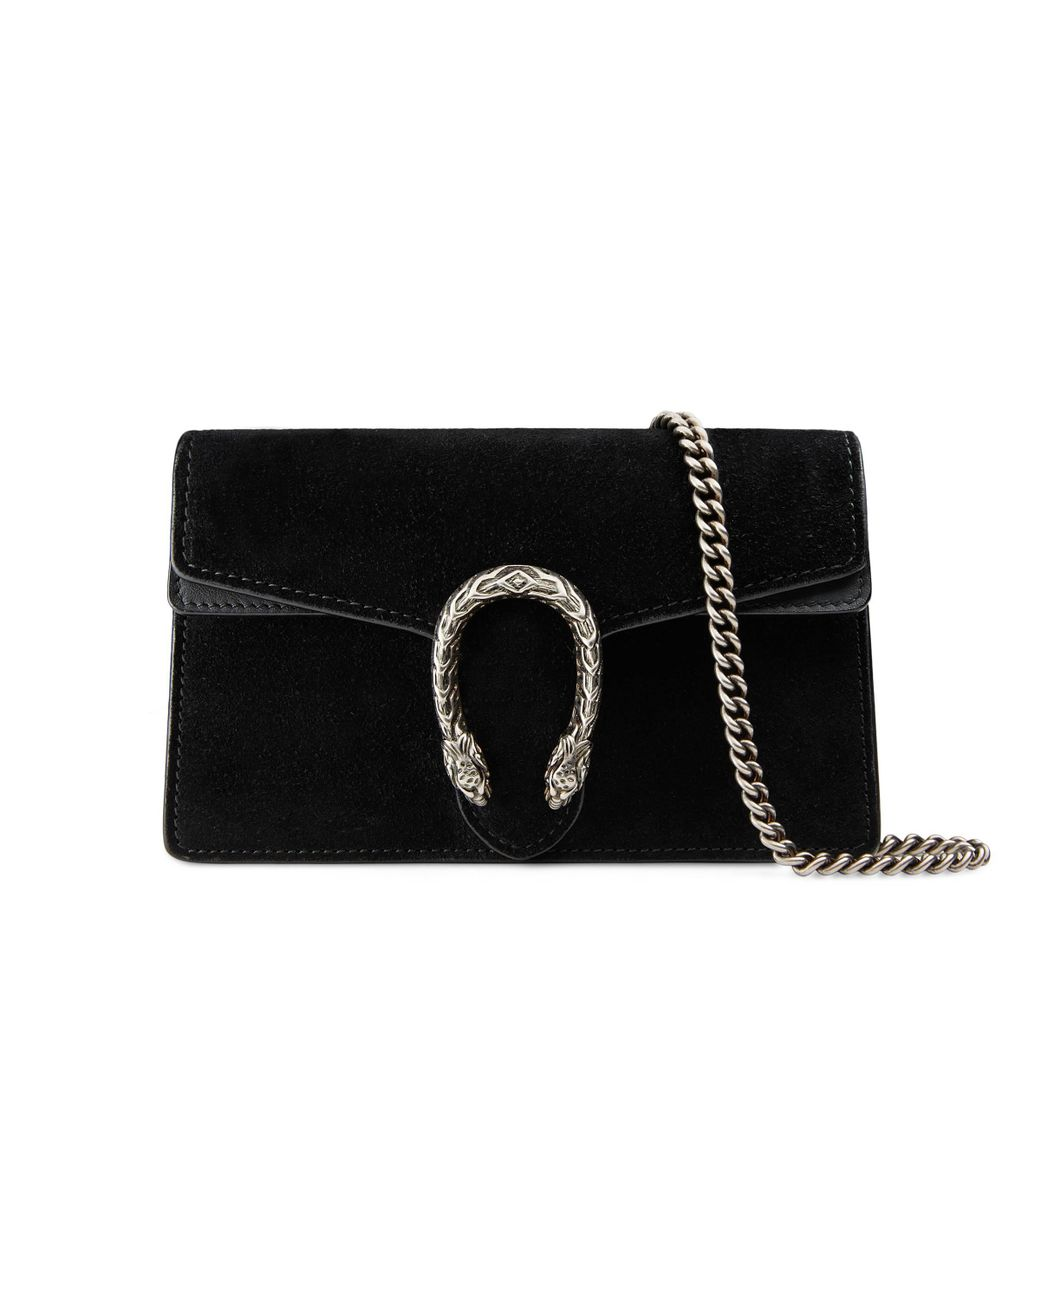 e27a145d1a71 Gucci Dionysus Suede Super Mini Bag in Black - Save 9% - Lyst